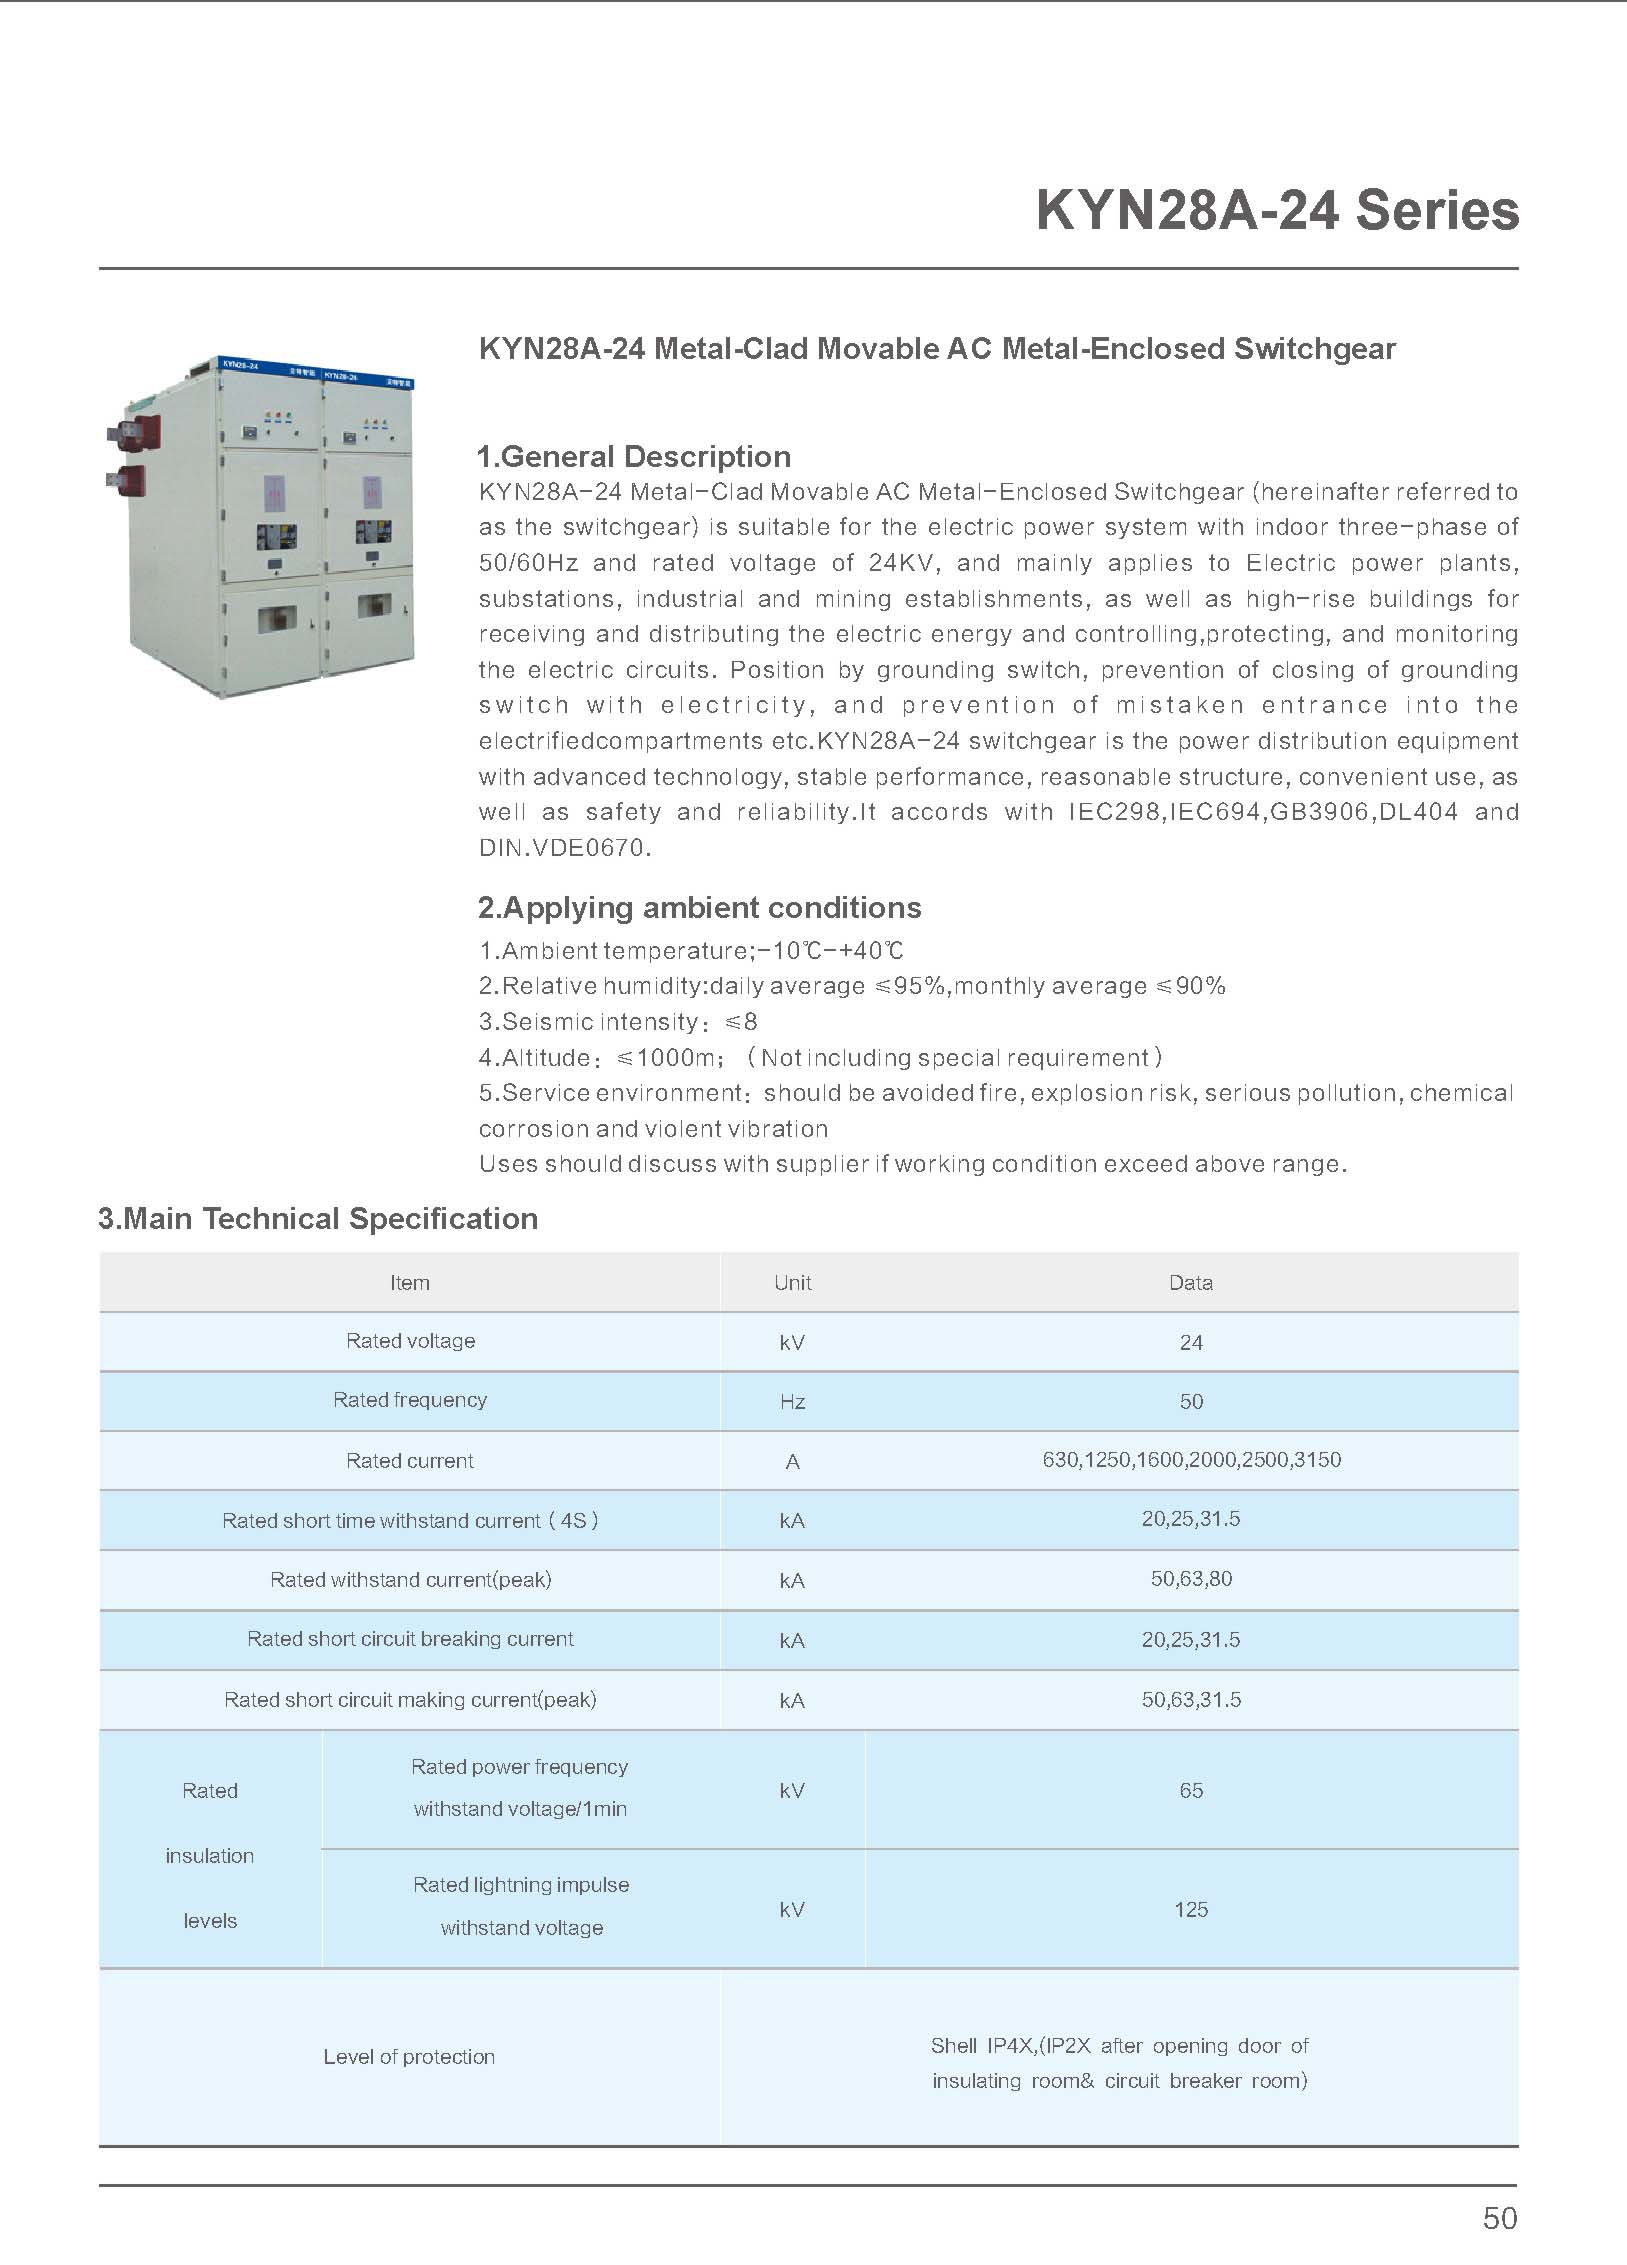 24kV Switchgear Technical Specification